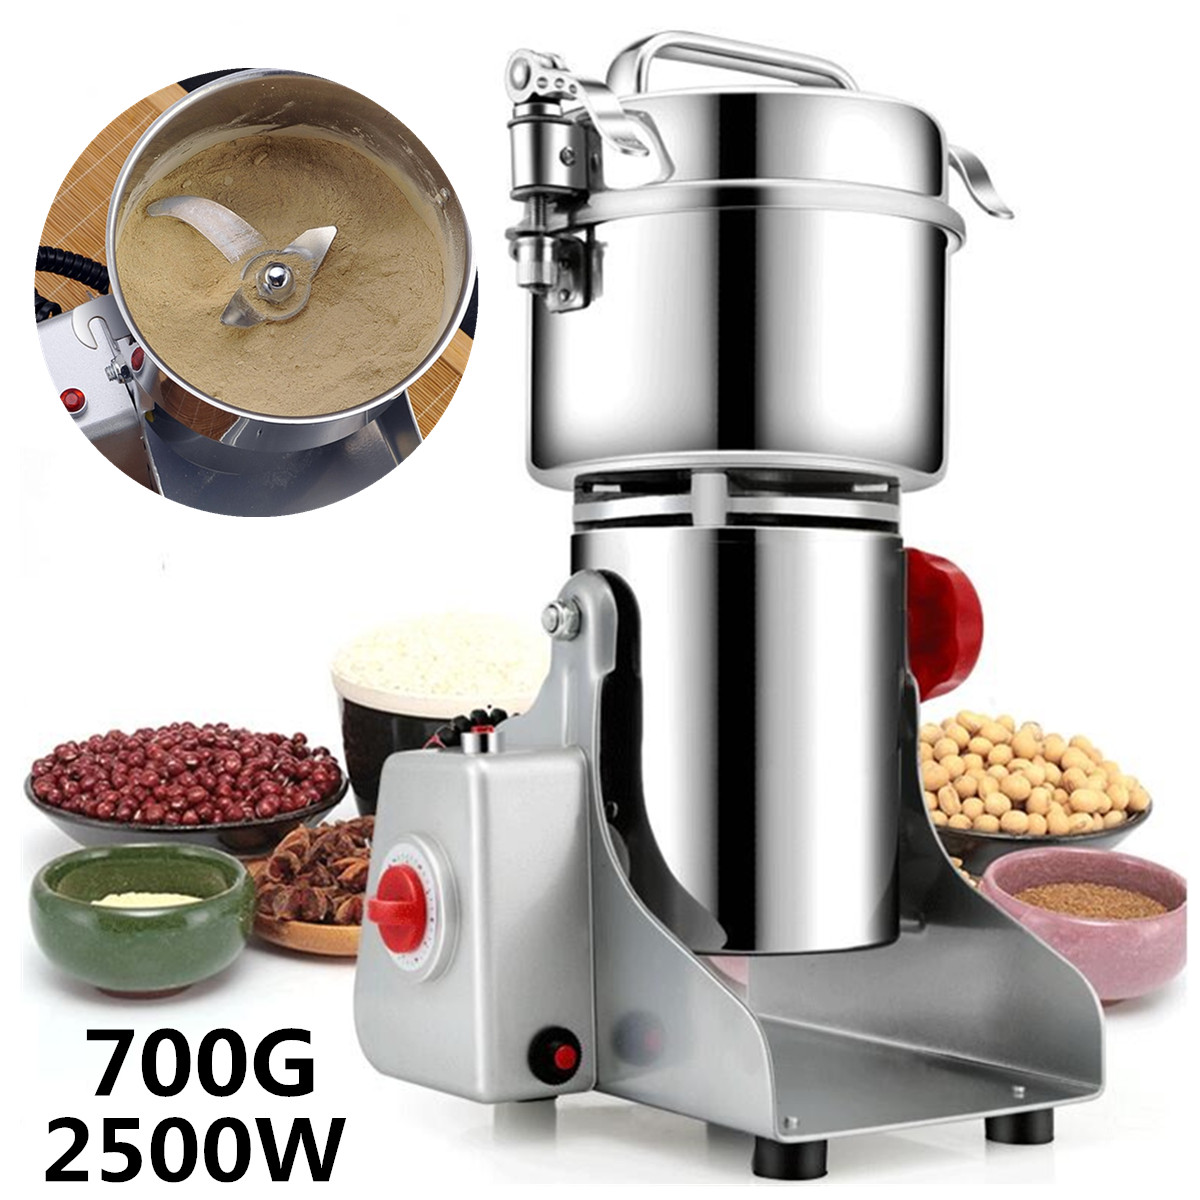 Blenders Chinese Herbal Medicine Crusher Household Small Mill Electric Dry Mill Powder Machine Ultrafine Commercial GrinderBlenders Chinese Herbal Medicine Crusher Household Small Mill Electric Dry Mill Powder Machine Ultrafine Commercial Grinder